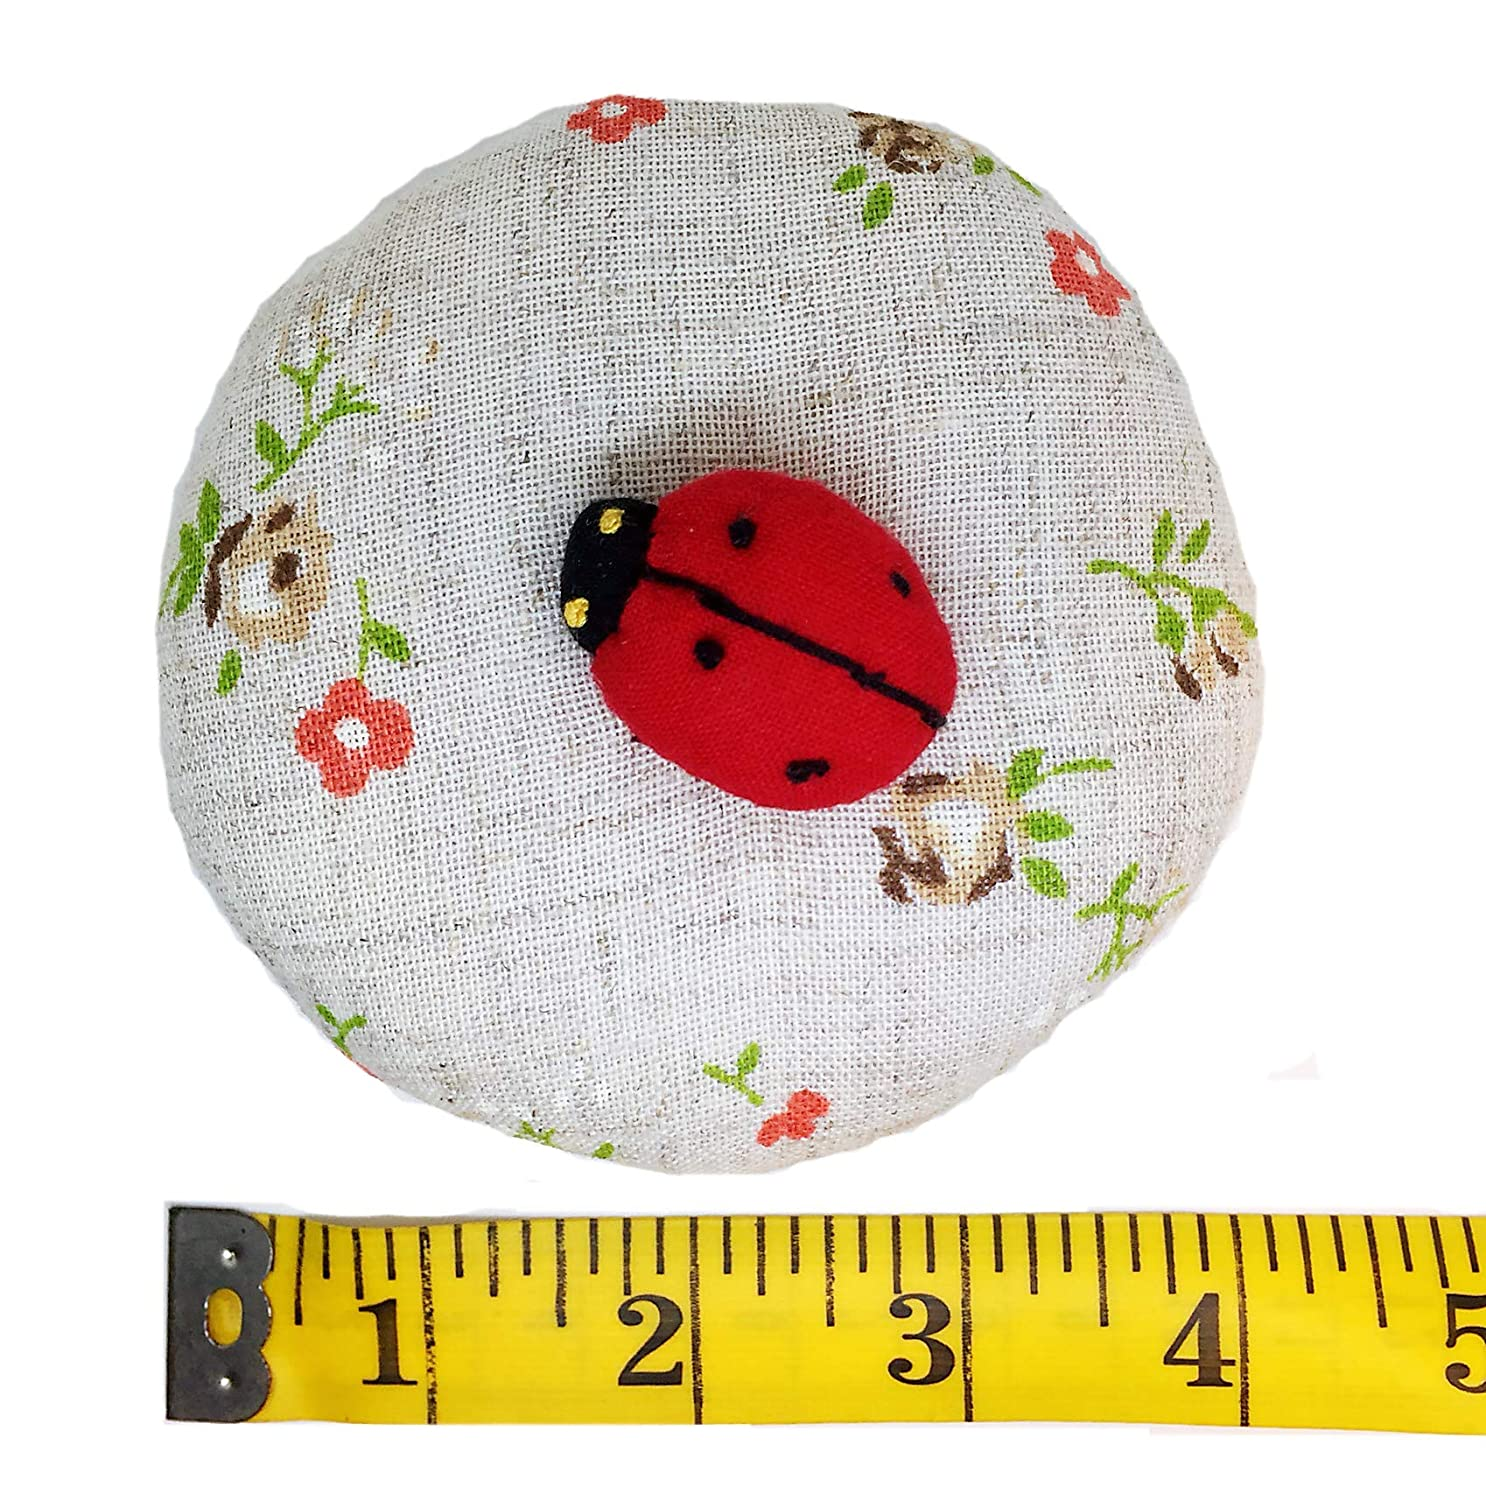 PeavyTailor Emery Pin Cushion 10oz Extra Large Keep Needles Clean and Sharp Needle Storage Organizer - Ladybug Red peavtailor.com